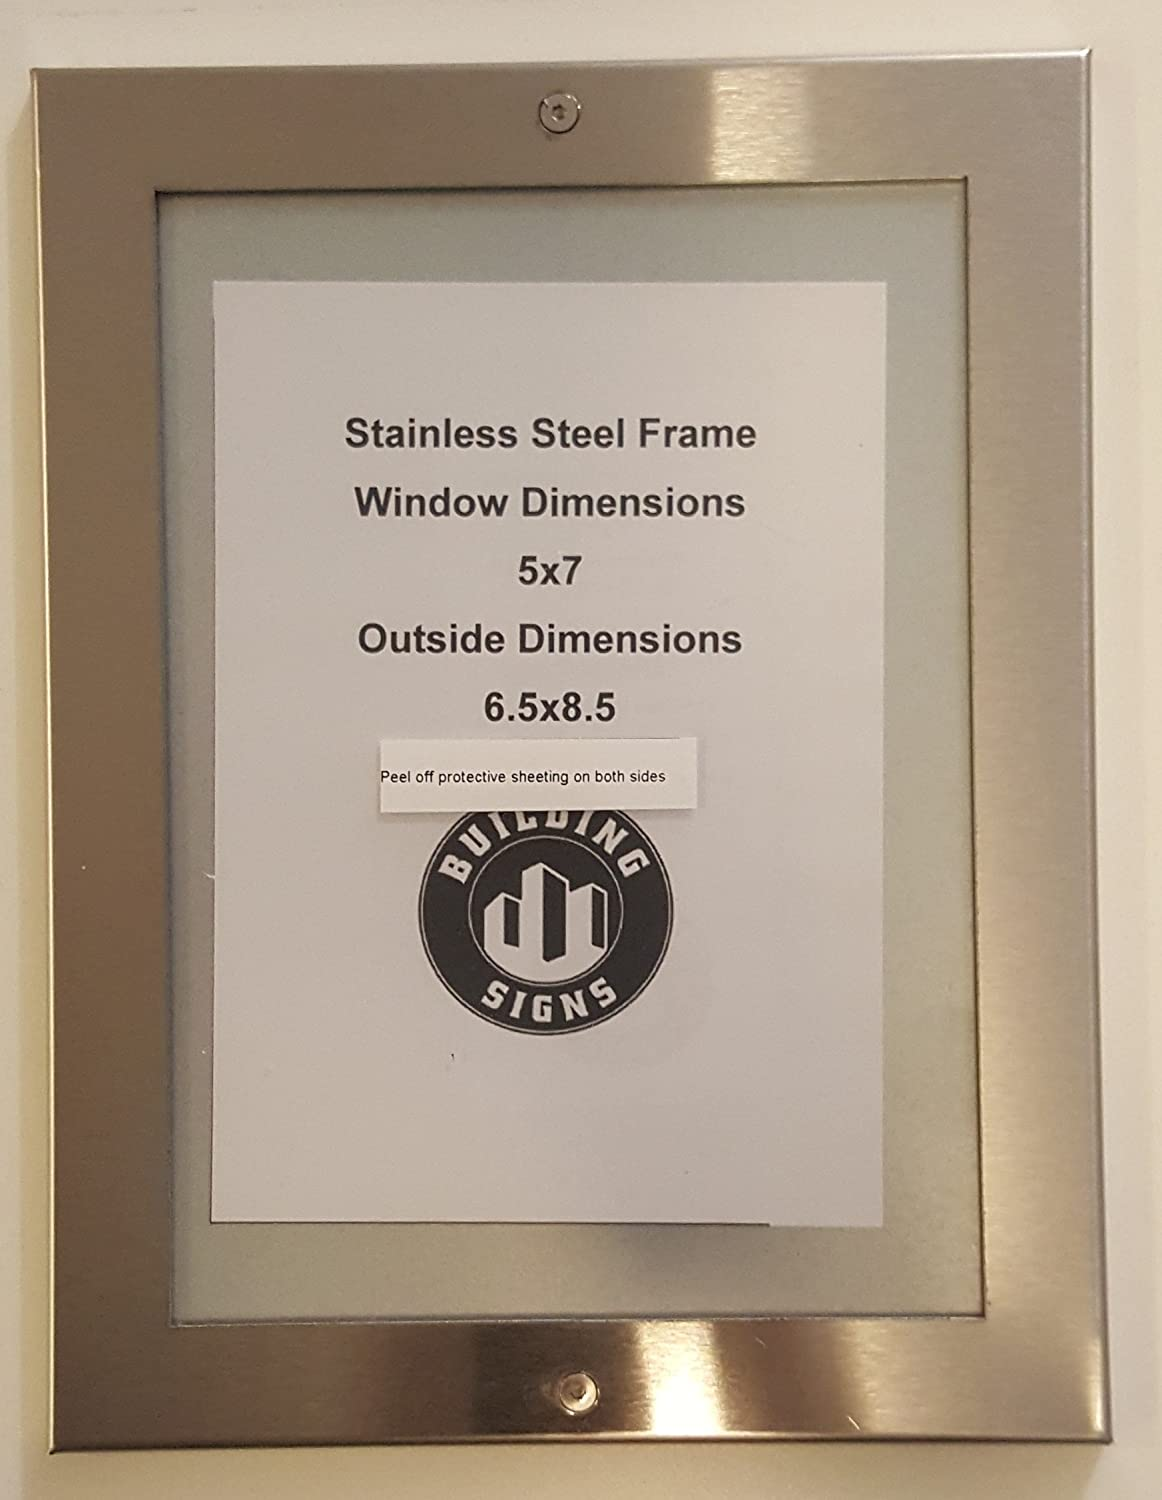 Elevator certificate frame Rare 5x7 stainless Steel High material